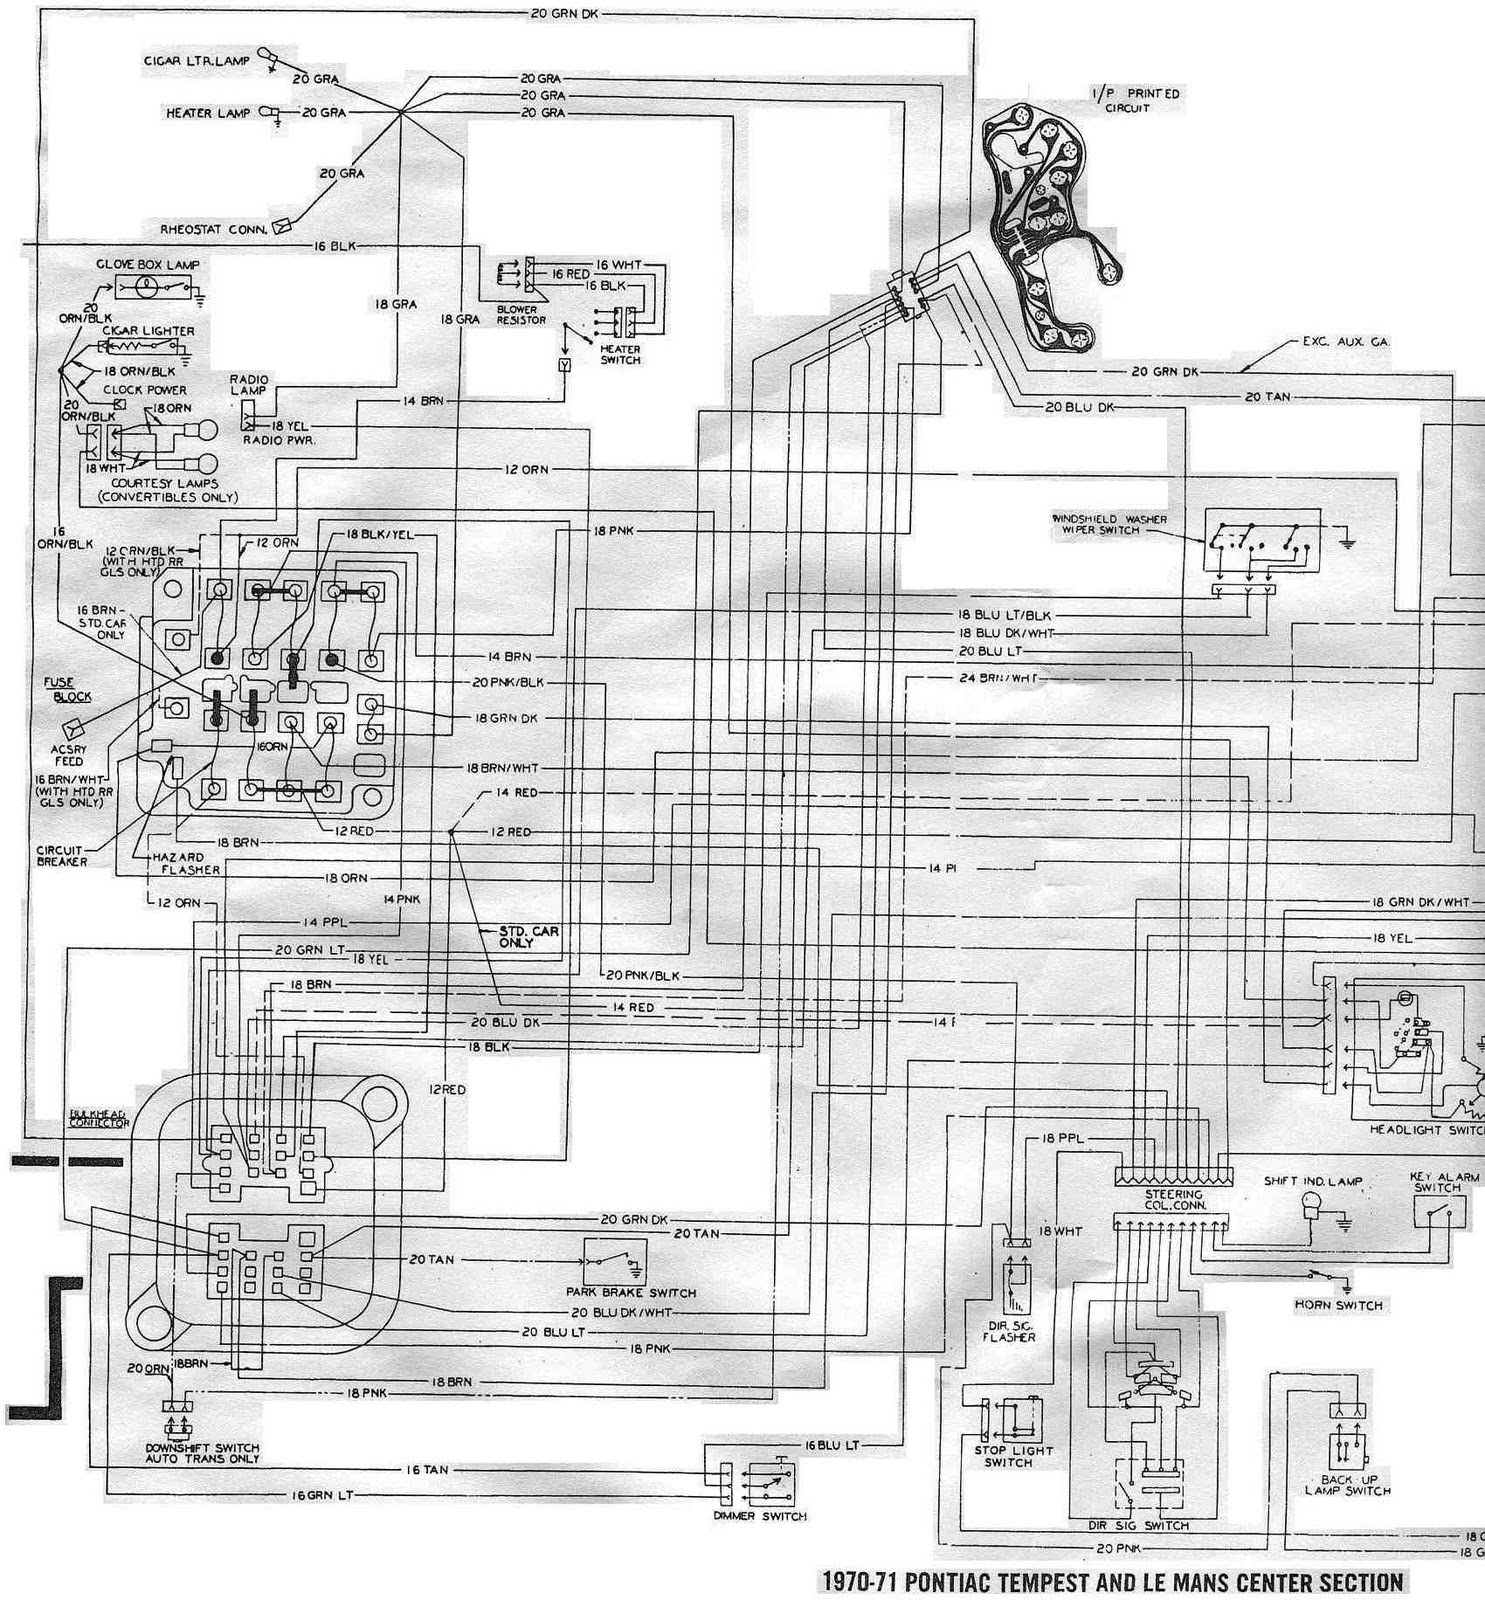 Pontiac+Tempest+and+LeMans+1970 1971+Center+Section+Schematic+Diagram pontiac tempest and lemans 1970 1971 center section schematic 71 mustang wiring diagram at bayanpartner.co